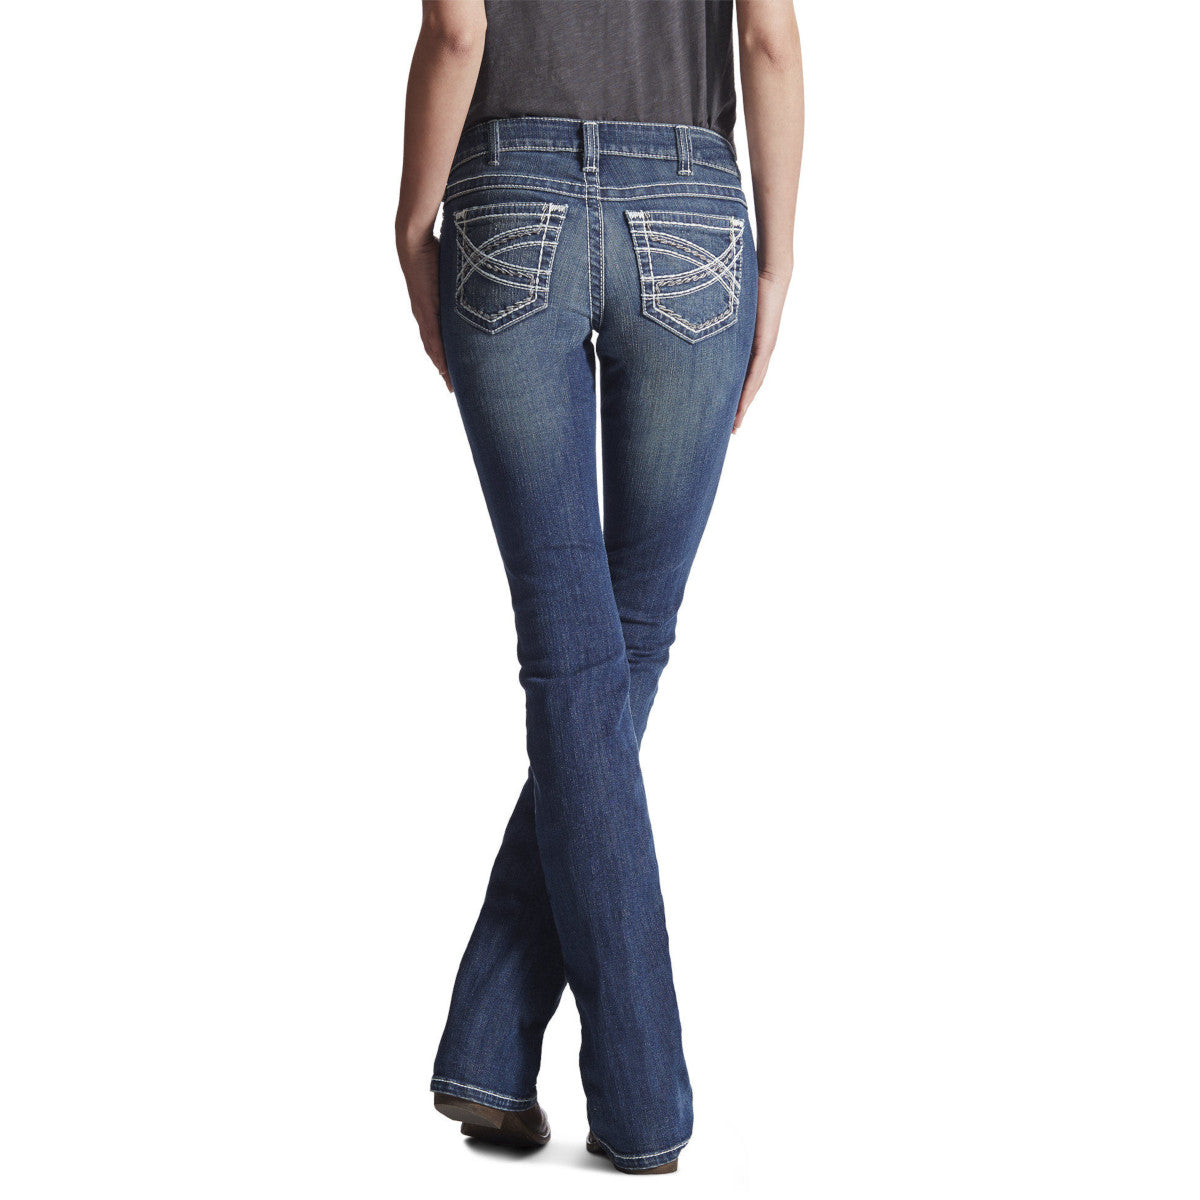 Ariat Women's R.E.A.L. Mid Rise Entwined Boot Cut Riding Jeans